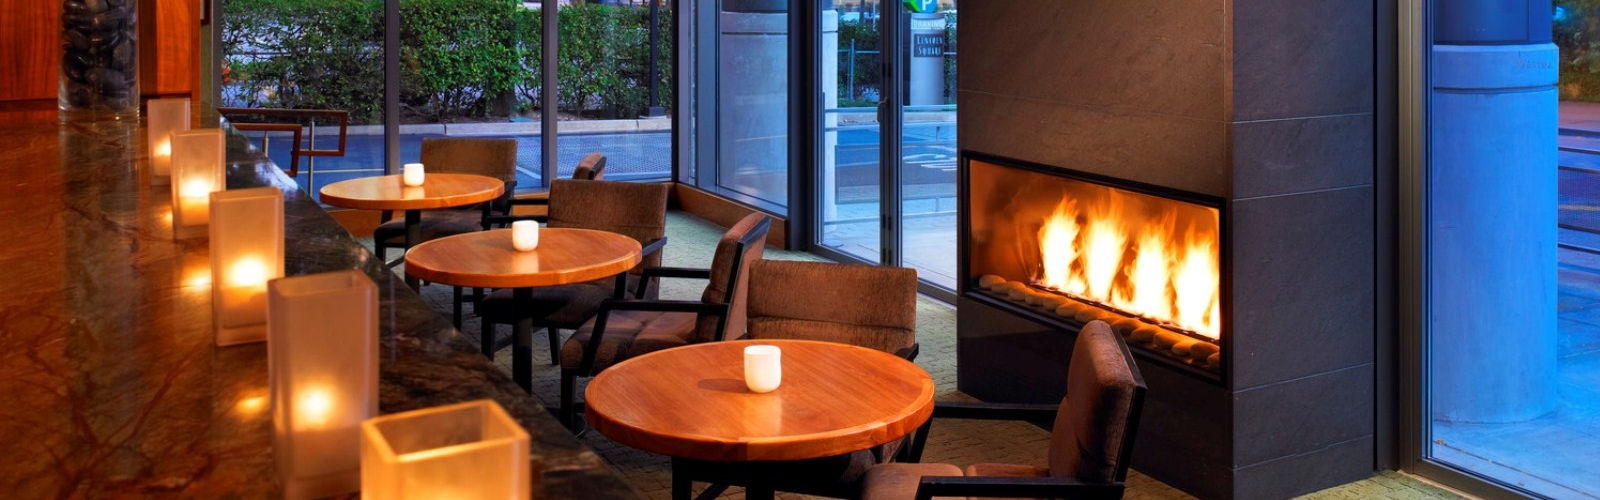 Bellevue Restaurants - Cypress Lounge & Wine Bar